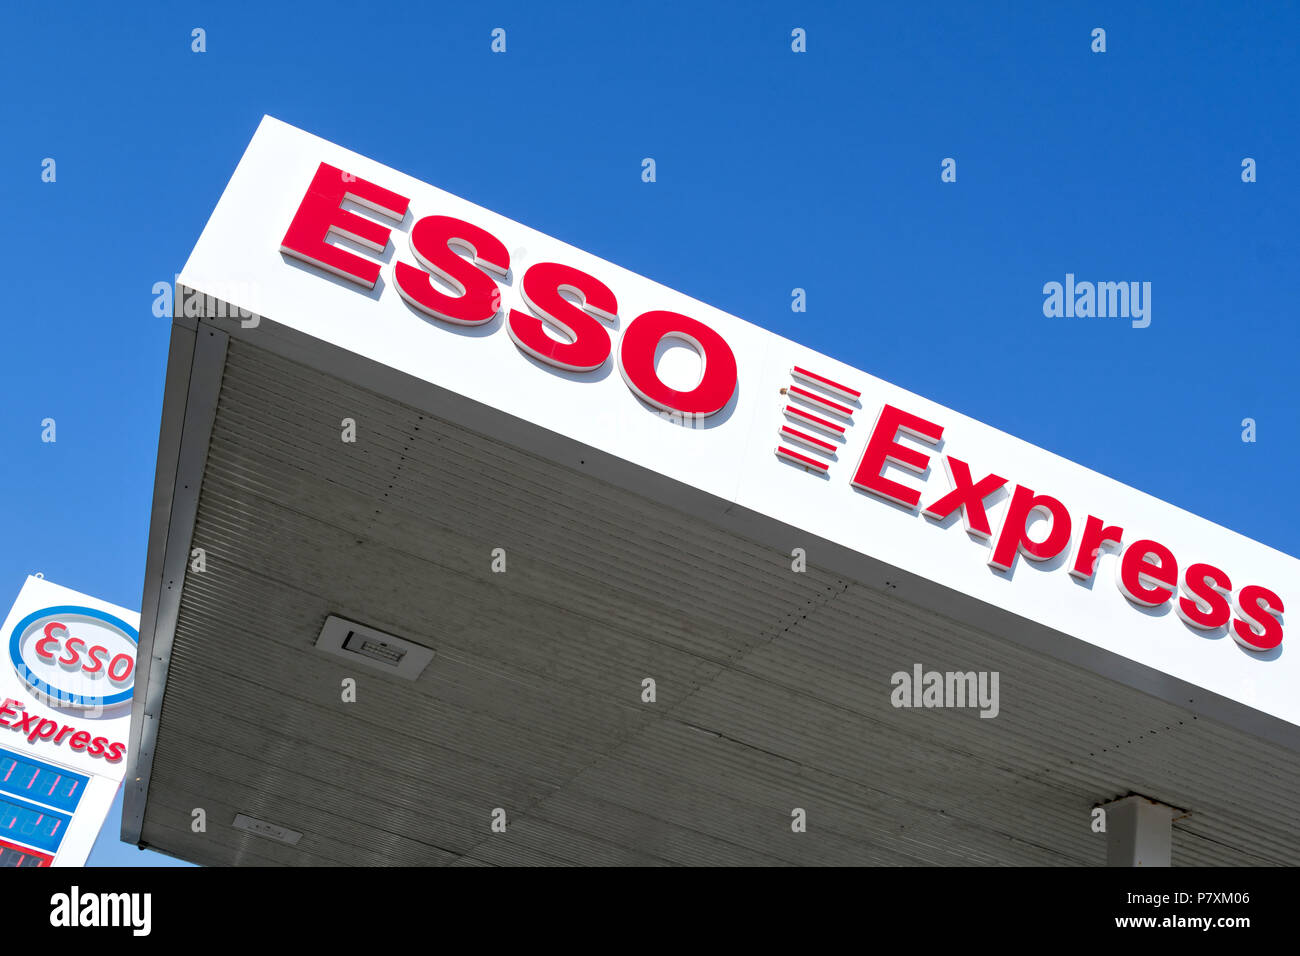 Esso Express lettering at gas station. Esso is ExxonMobil's primary gasoline brand worldwide. - Stock Image